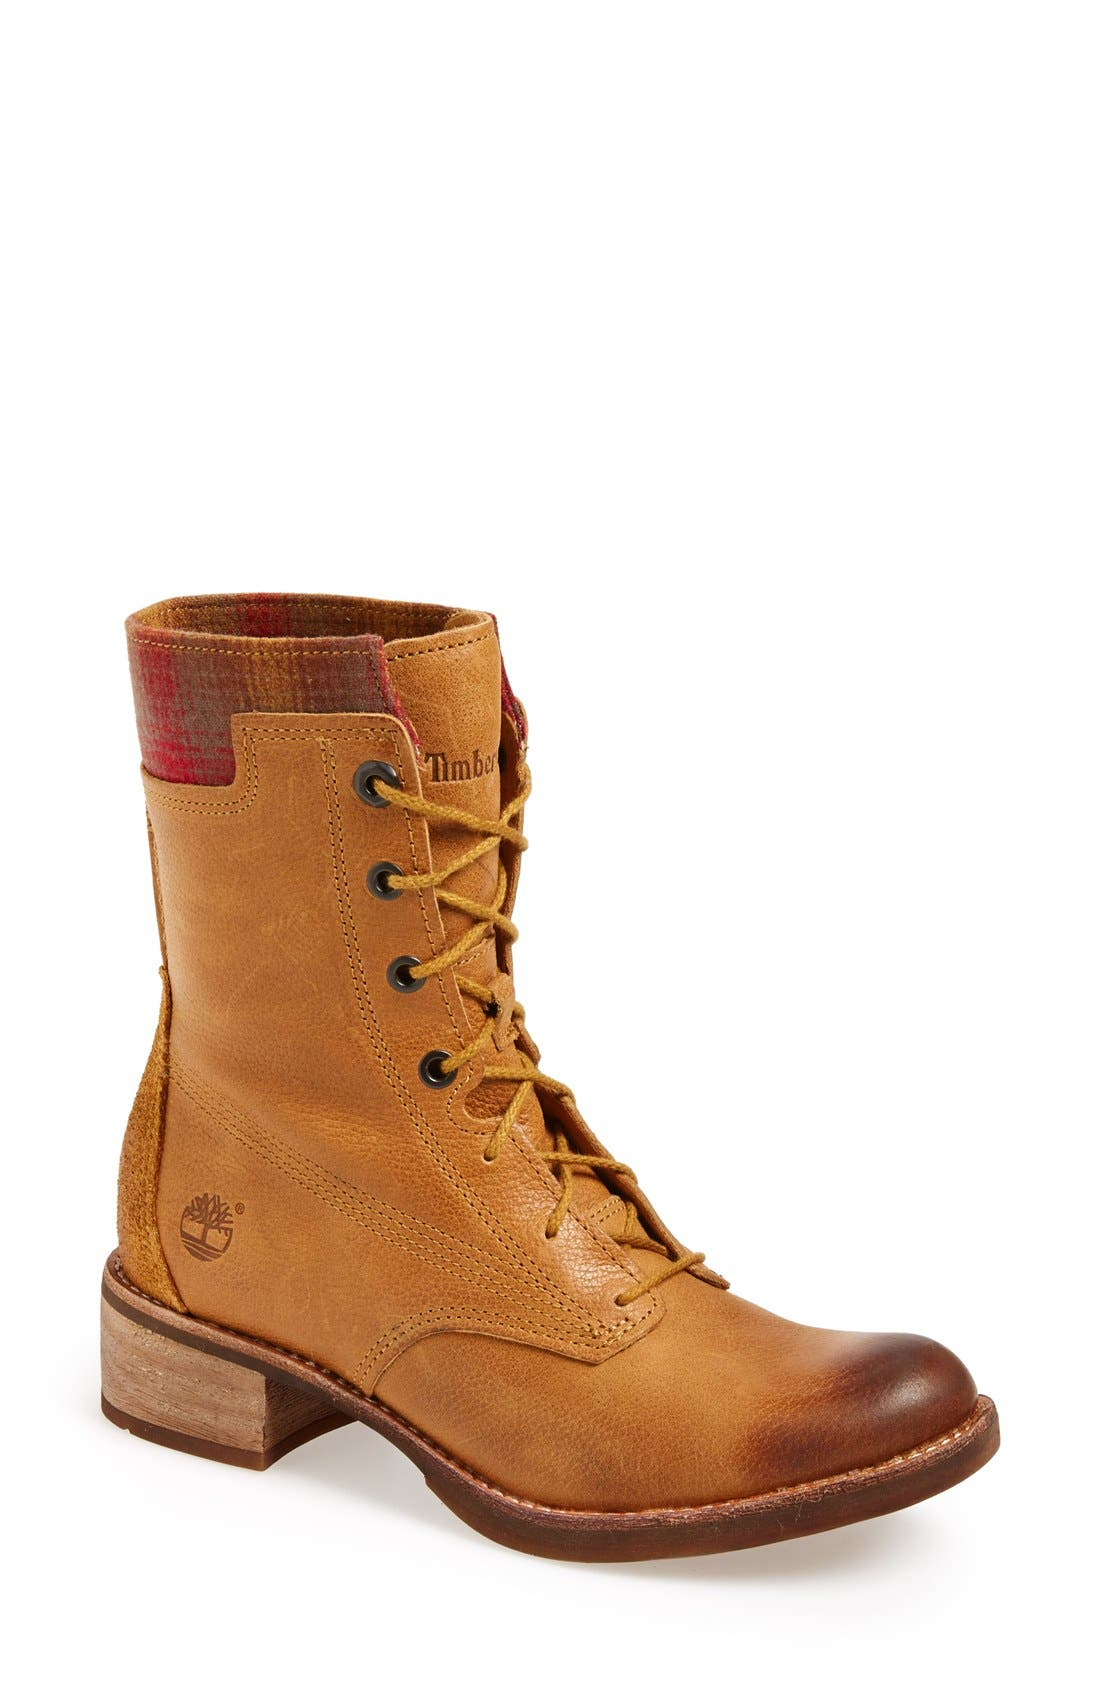 Main Image - Timberland 'Whitermore' Mid Lace Up Boot (Women)